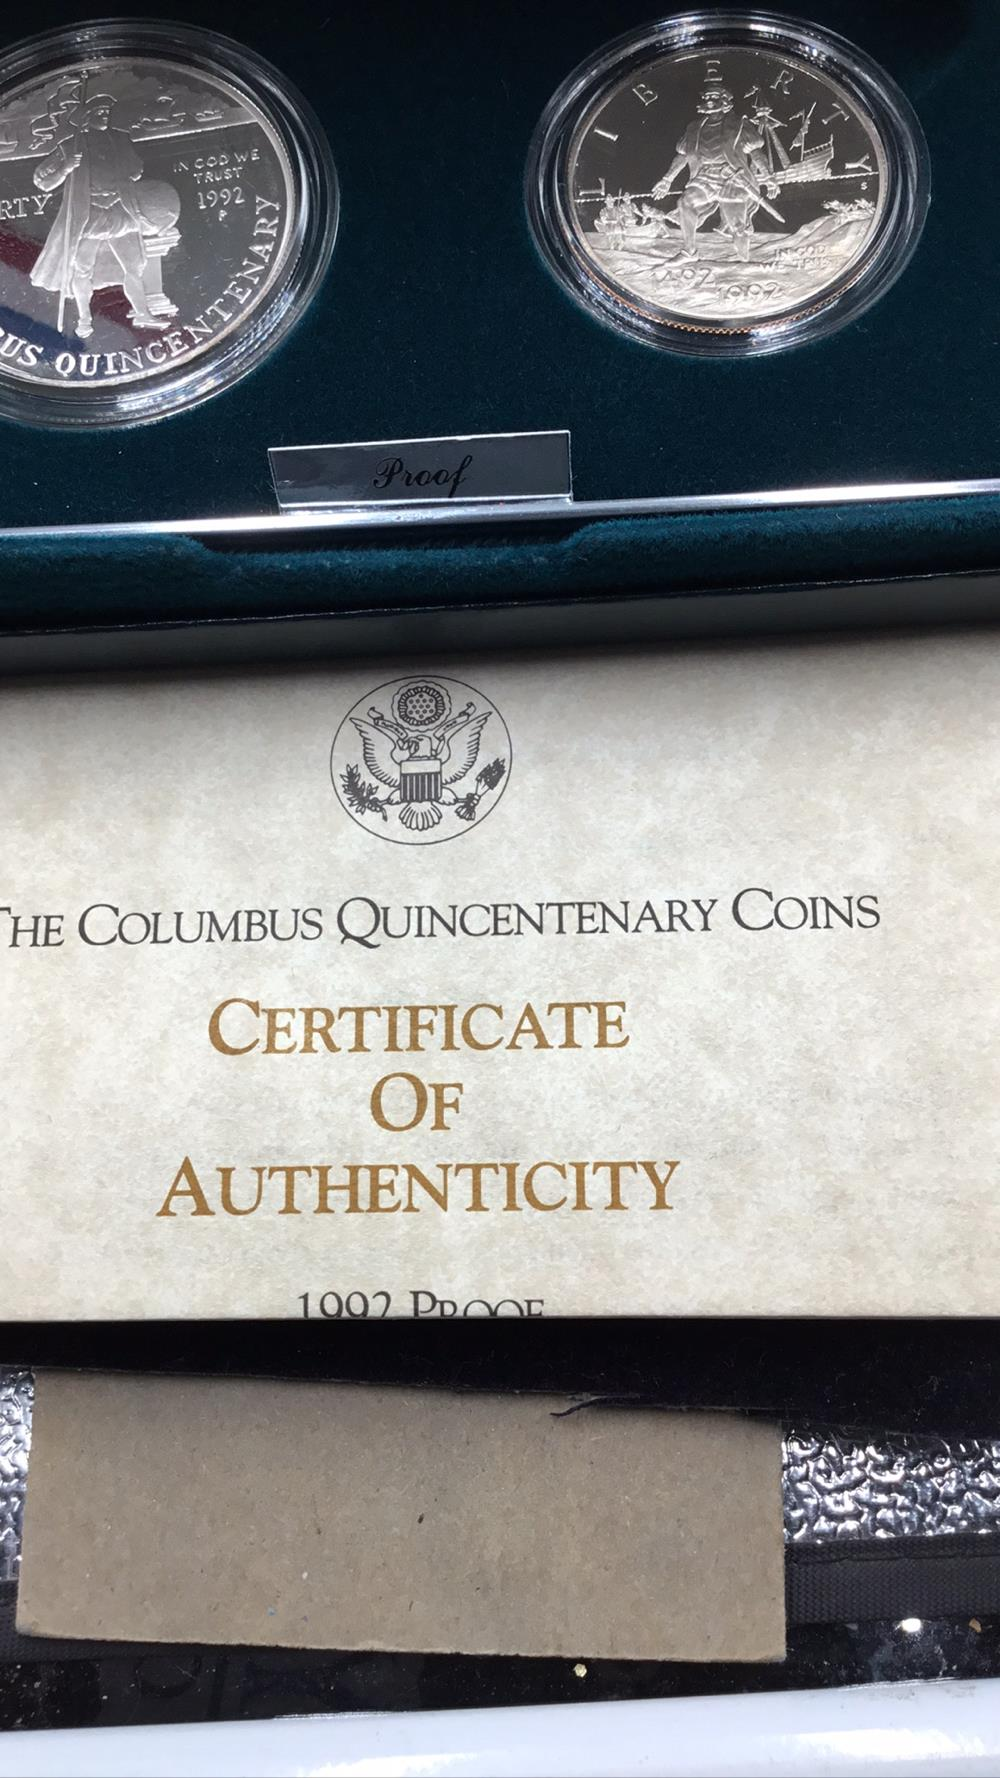 Lot 105: United states mint Columbus Quincentenary Coins